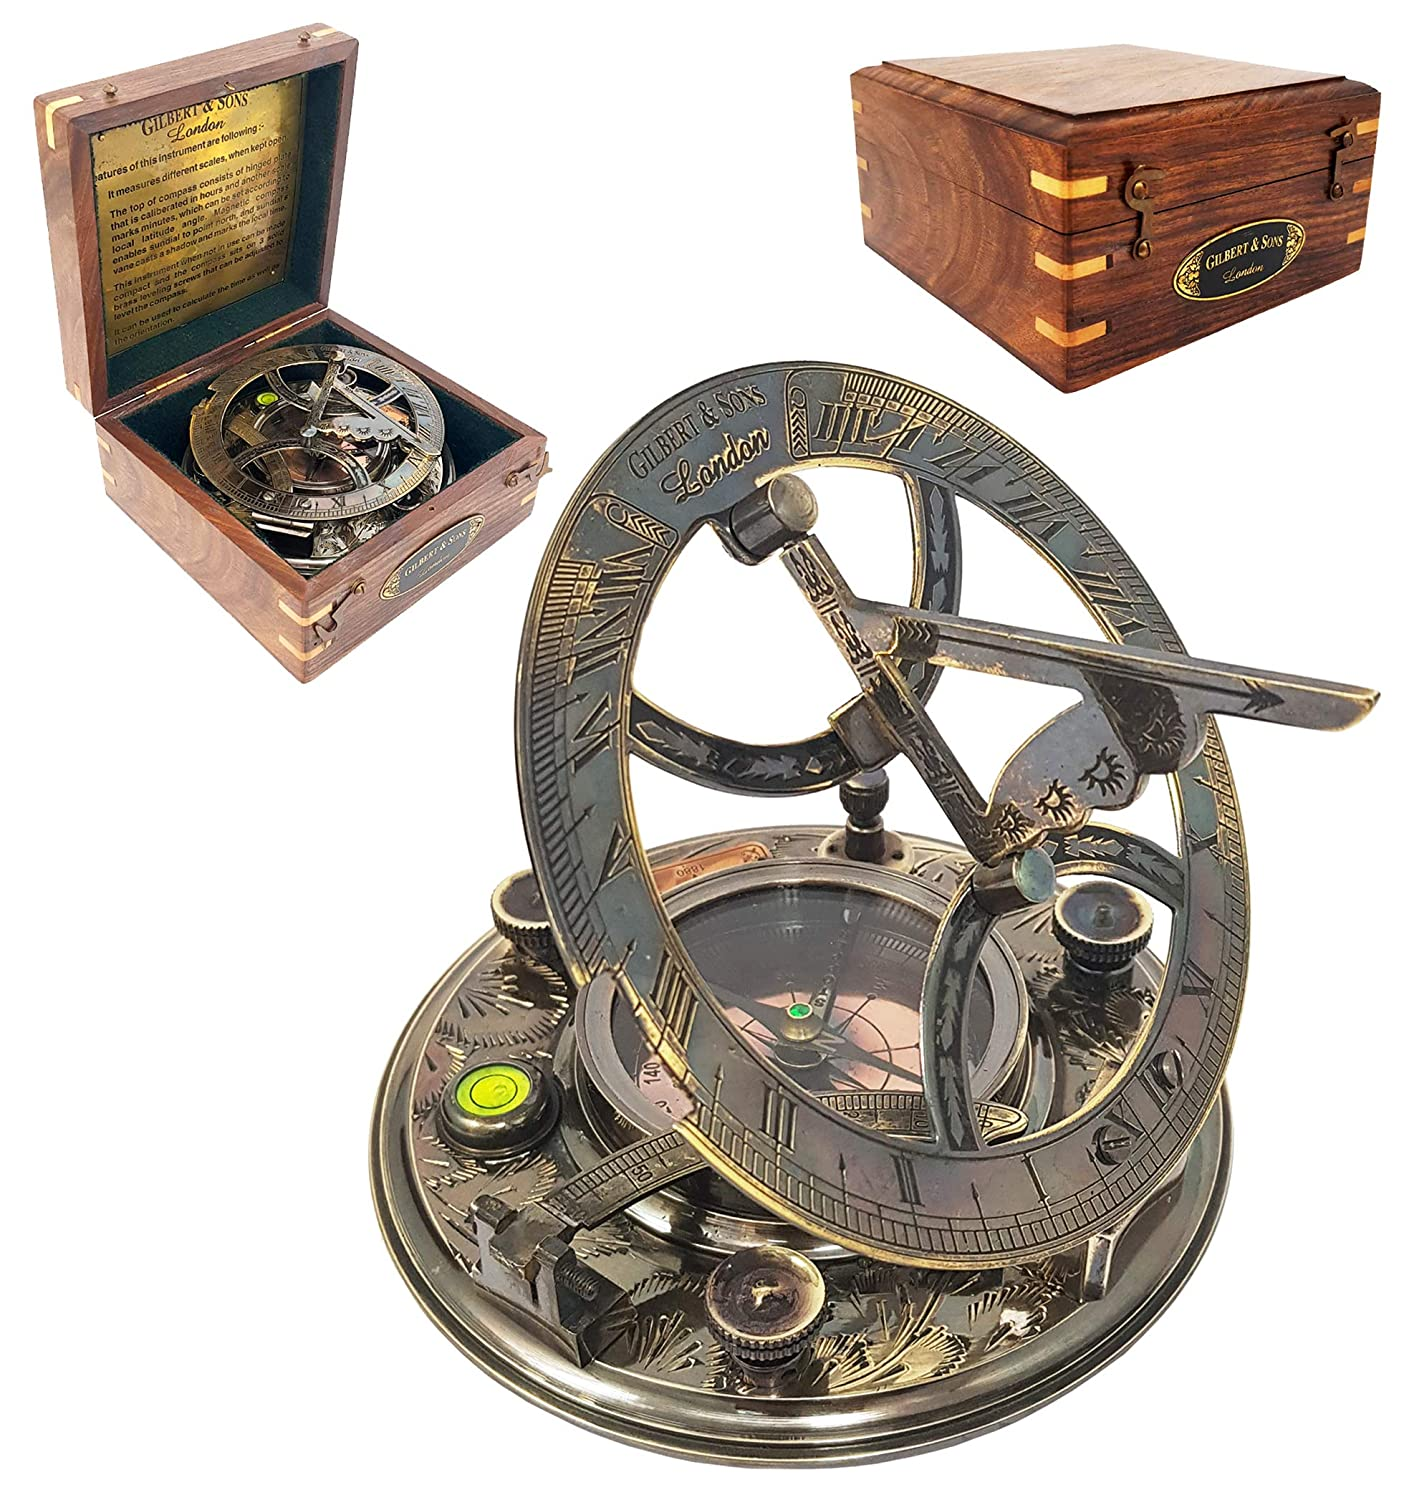 Sundial Compass 5in Dia with Hardwood Box - Antique Sundial Compass Replica - Gilbert & Sons by The New Antique Store .